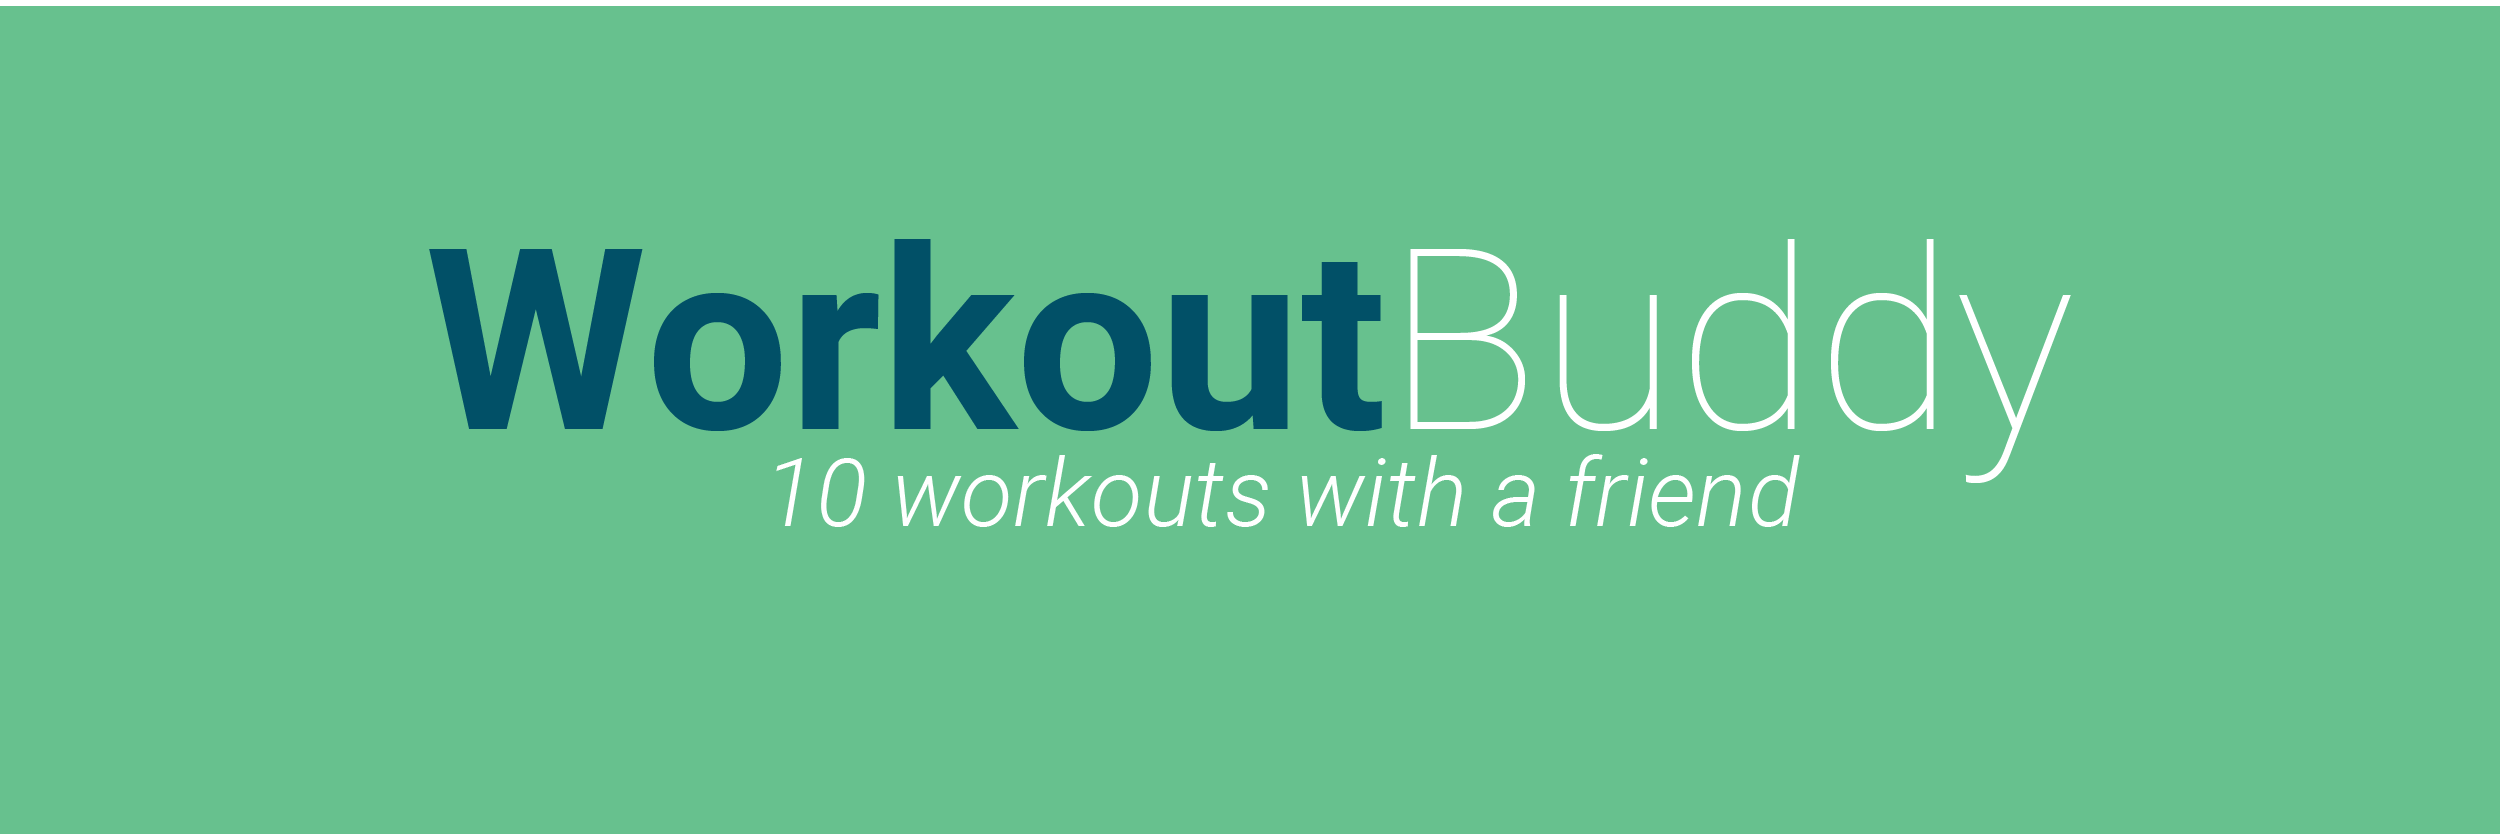 Workout Buddy_tile-01-1